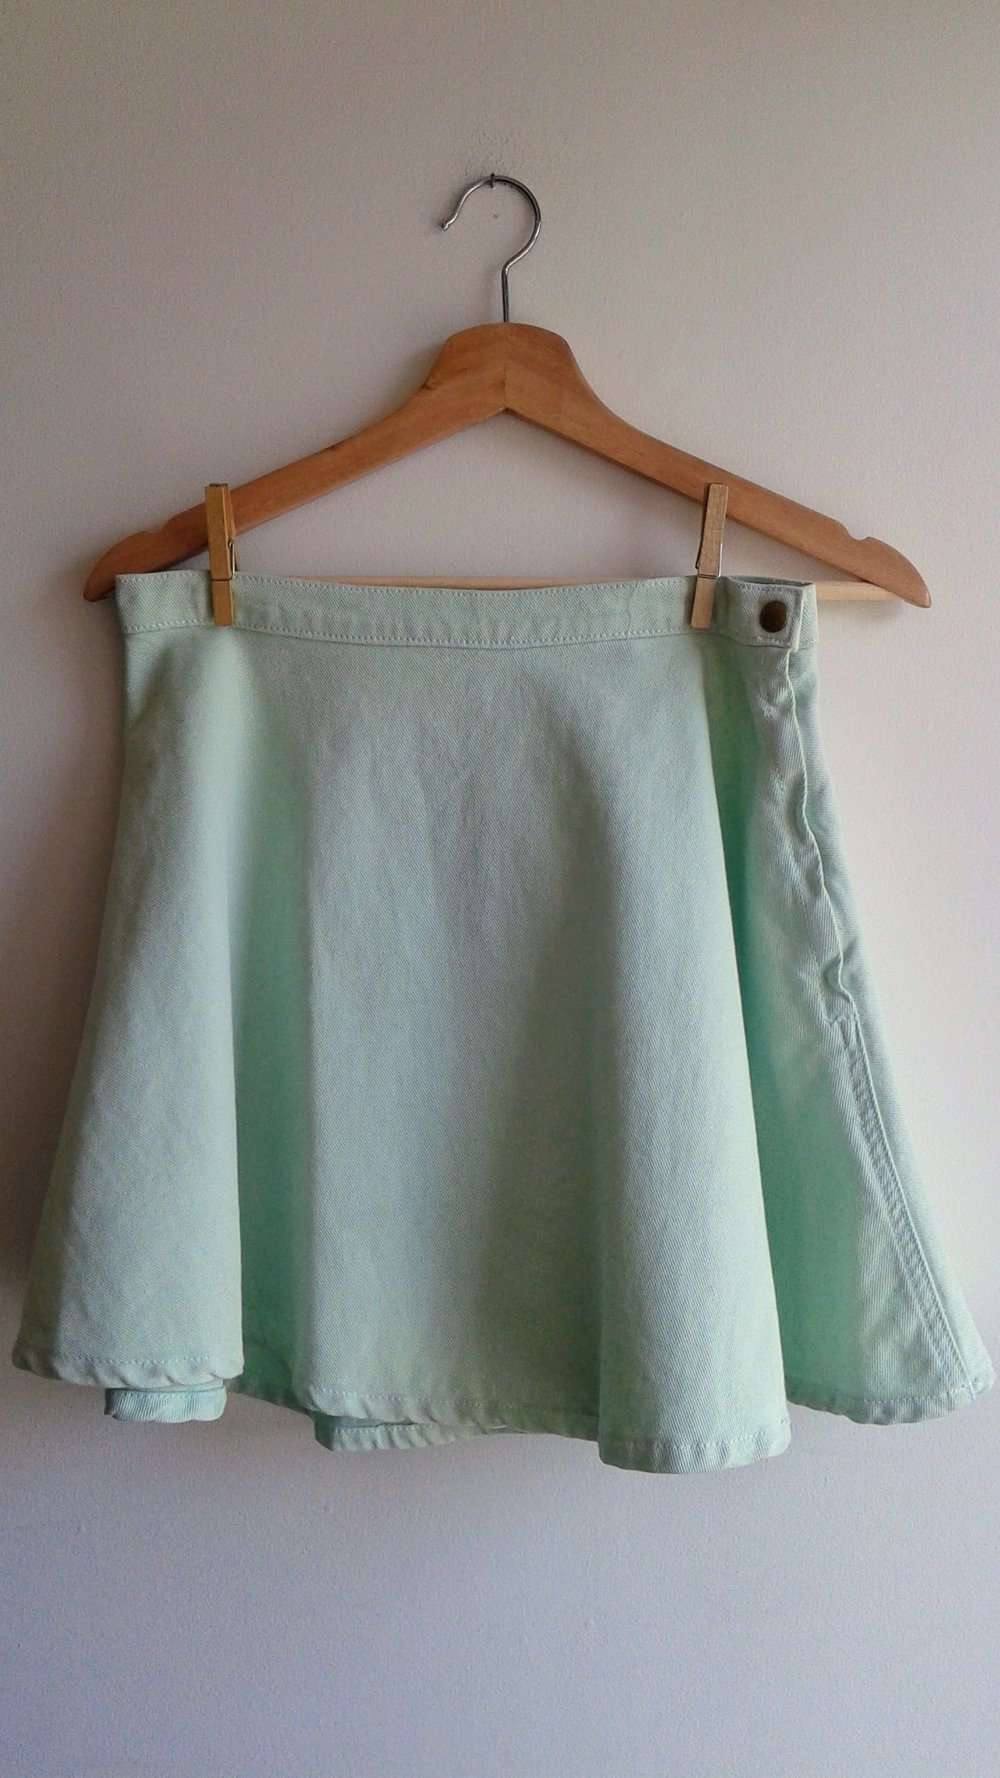 American Apparel skirt; Size M, $24